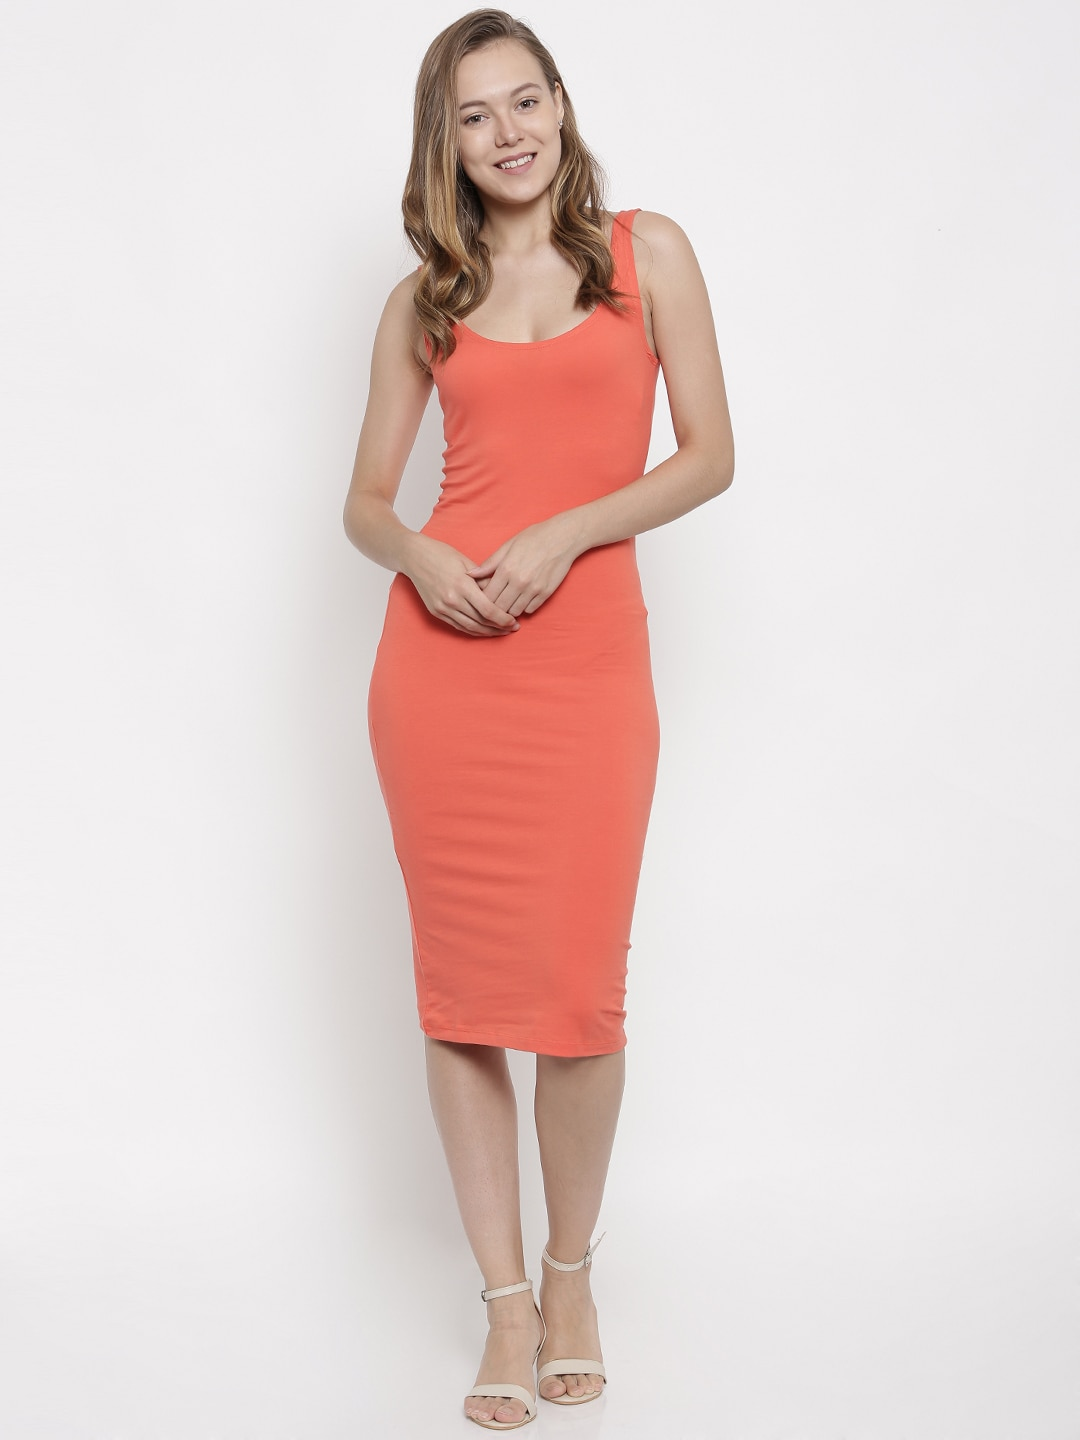 pink woman Women Coral Pink Solid Bodycon Dress image